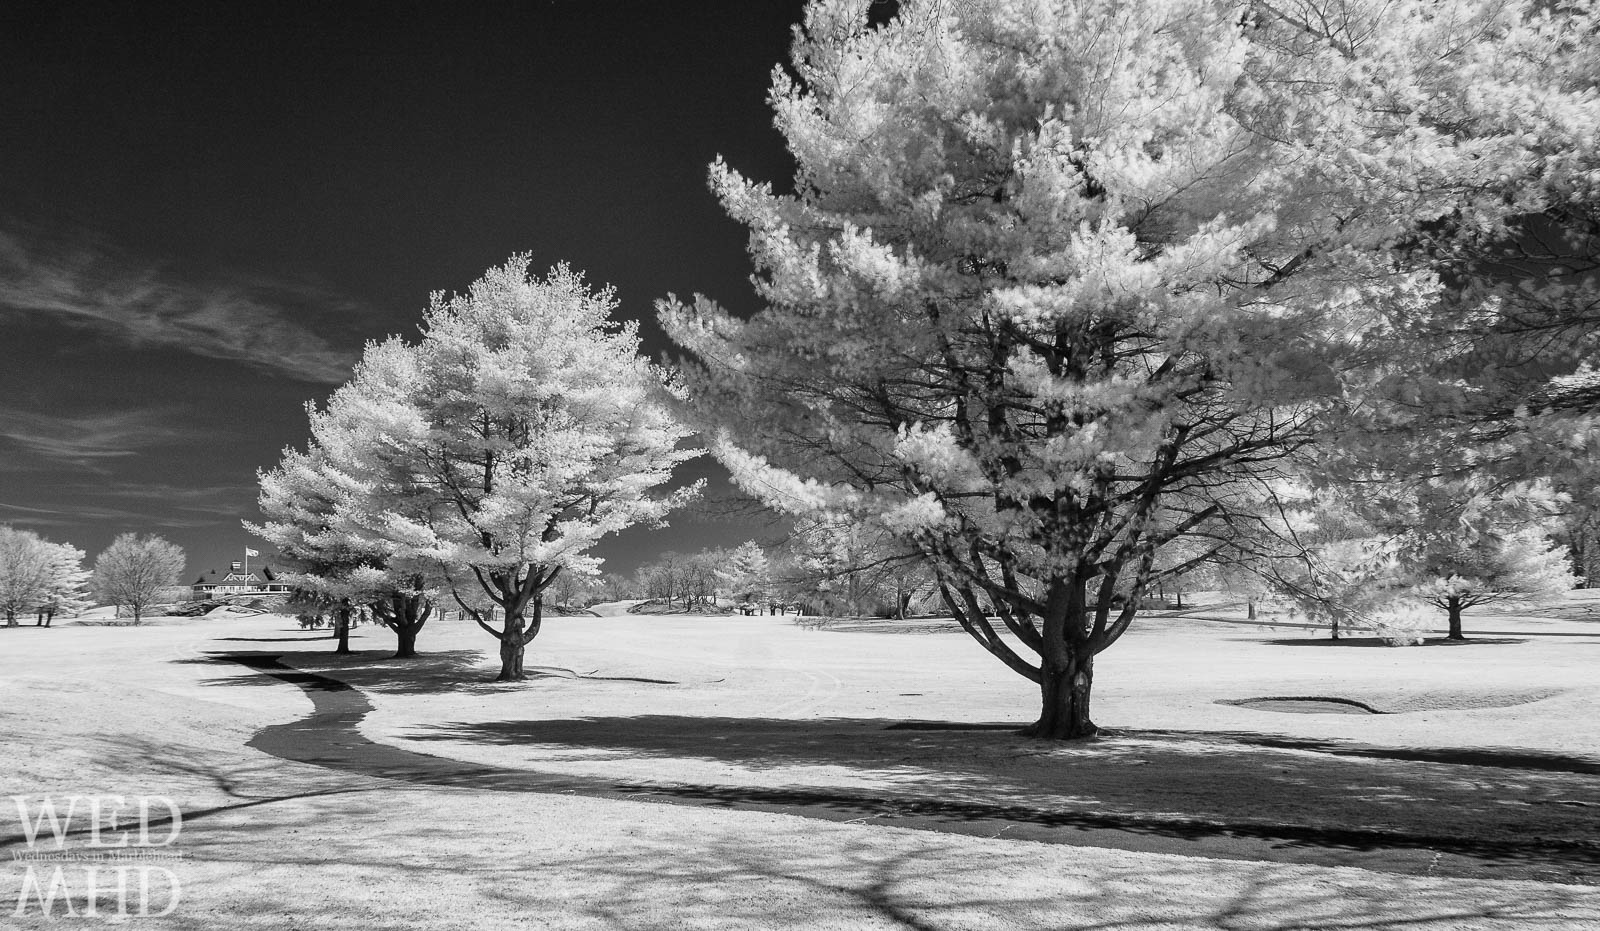 A road leads to Tedesco Country Club past trees with white leaves in this black and white infrared image